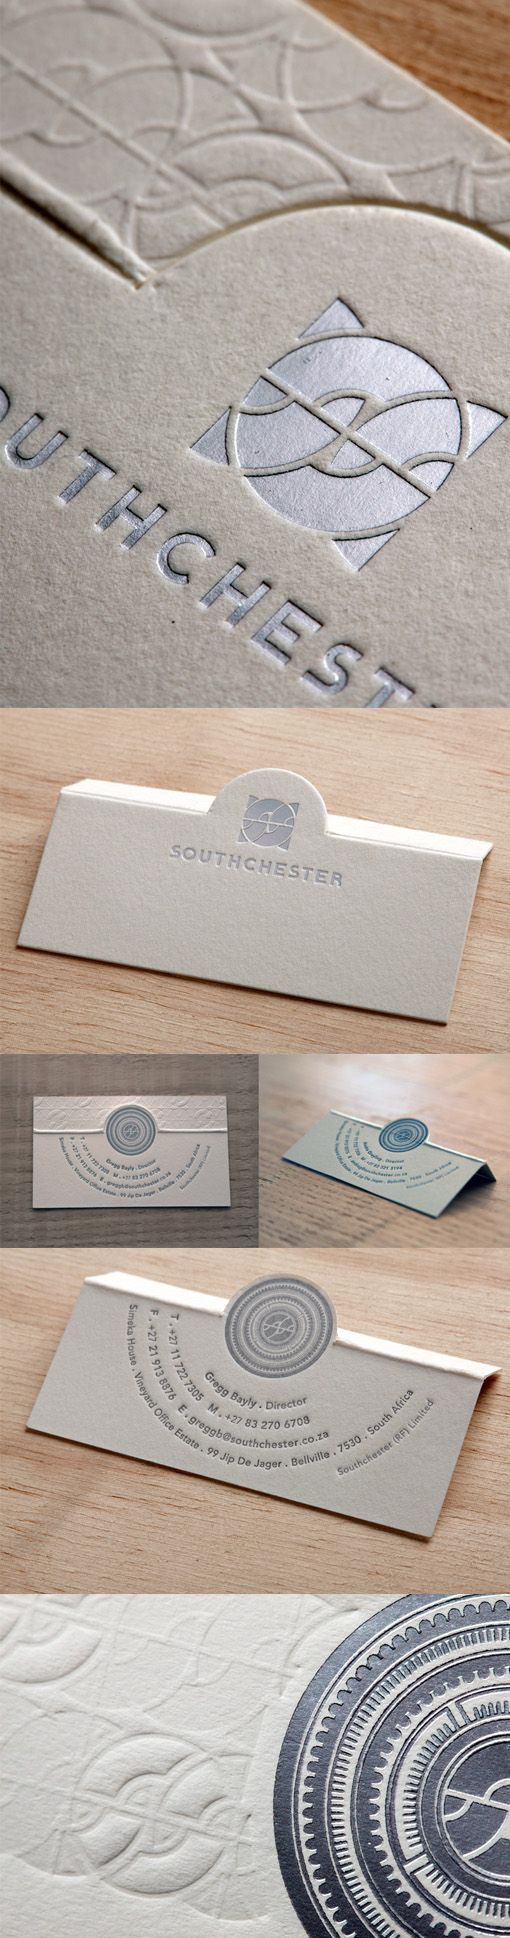 851 best Business Card Gallery images on Pinterest | Business card ...